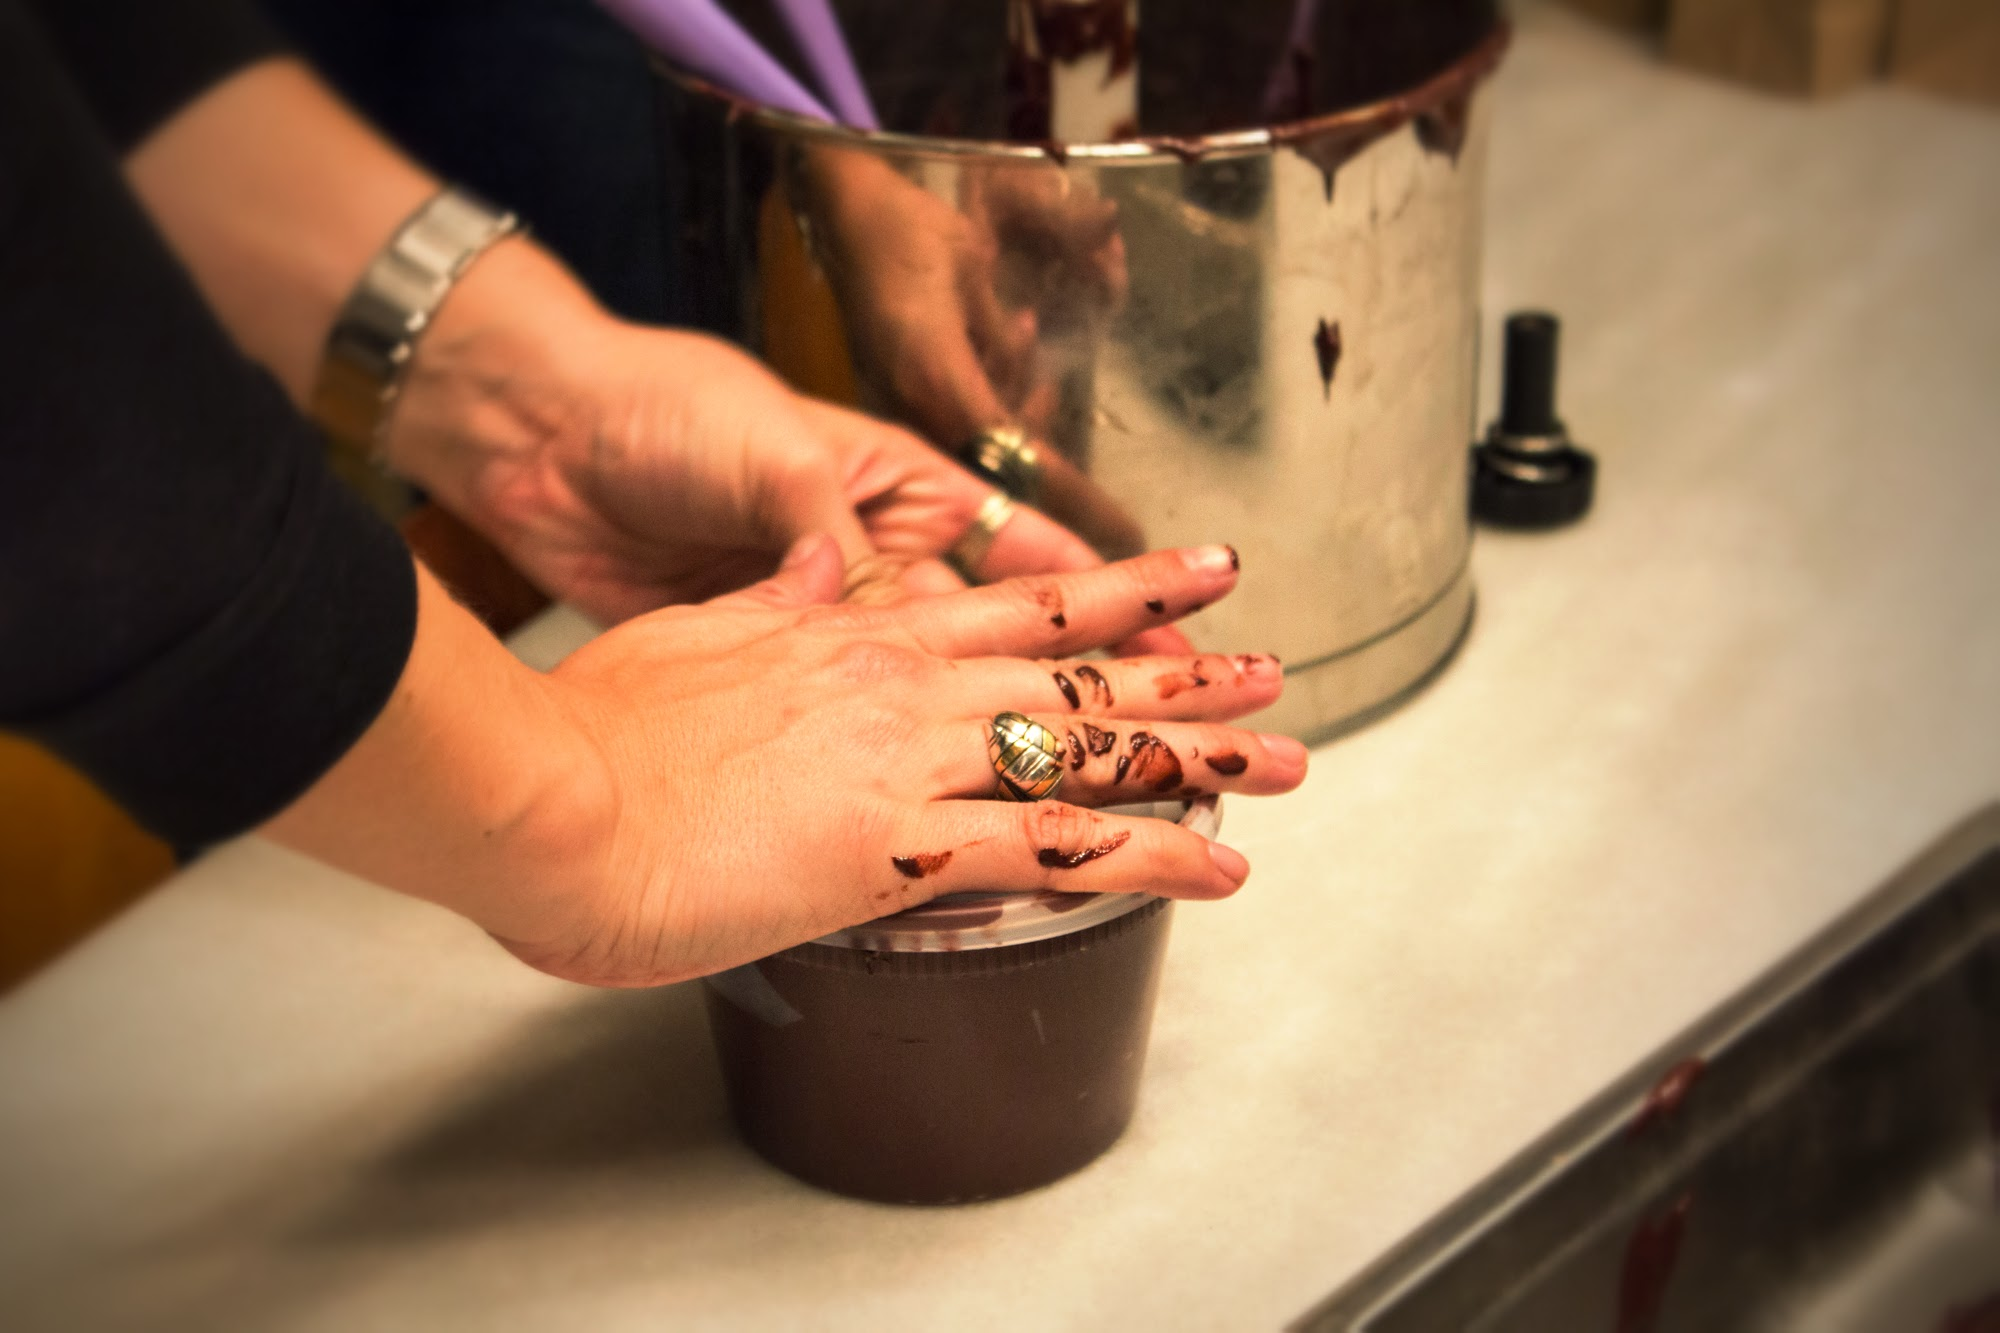 Edible Innovations: Founding a Bean-to-Bar Chocolate Factory